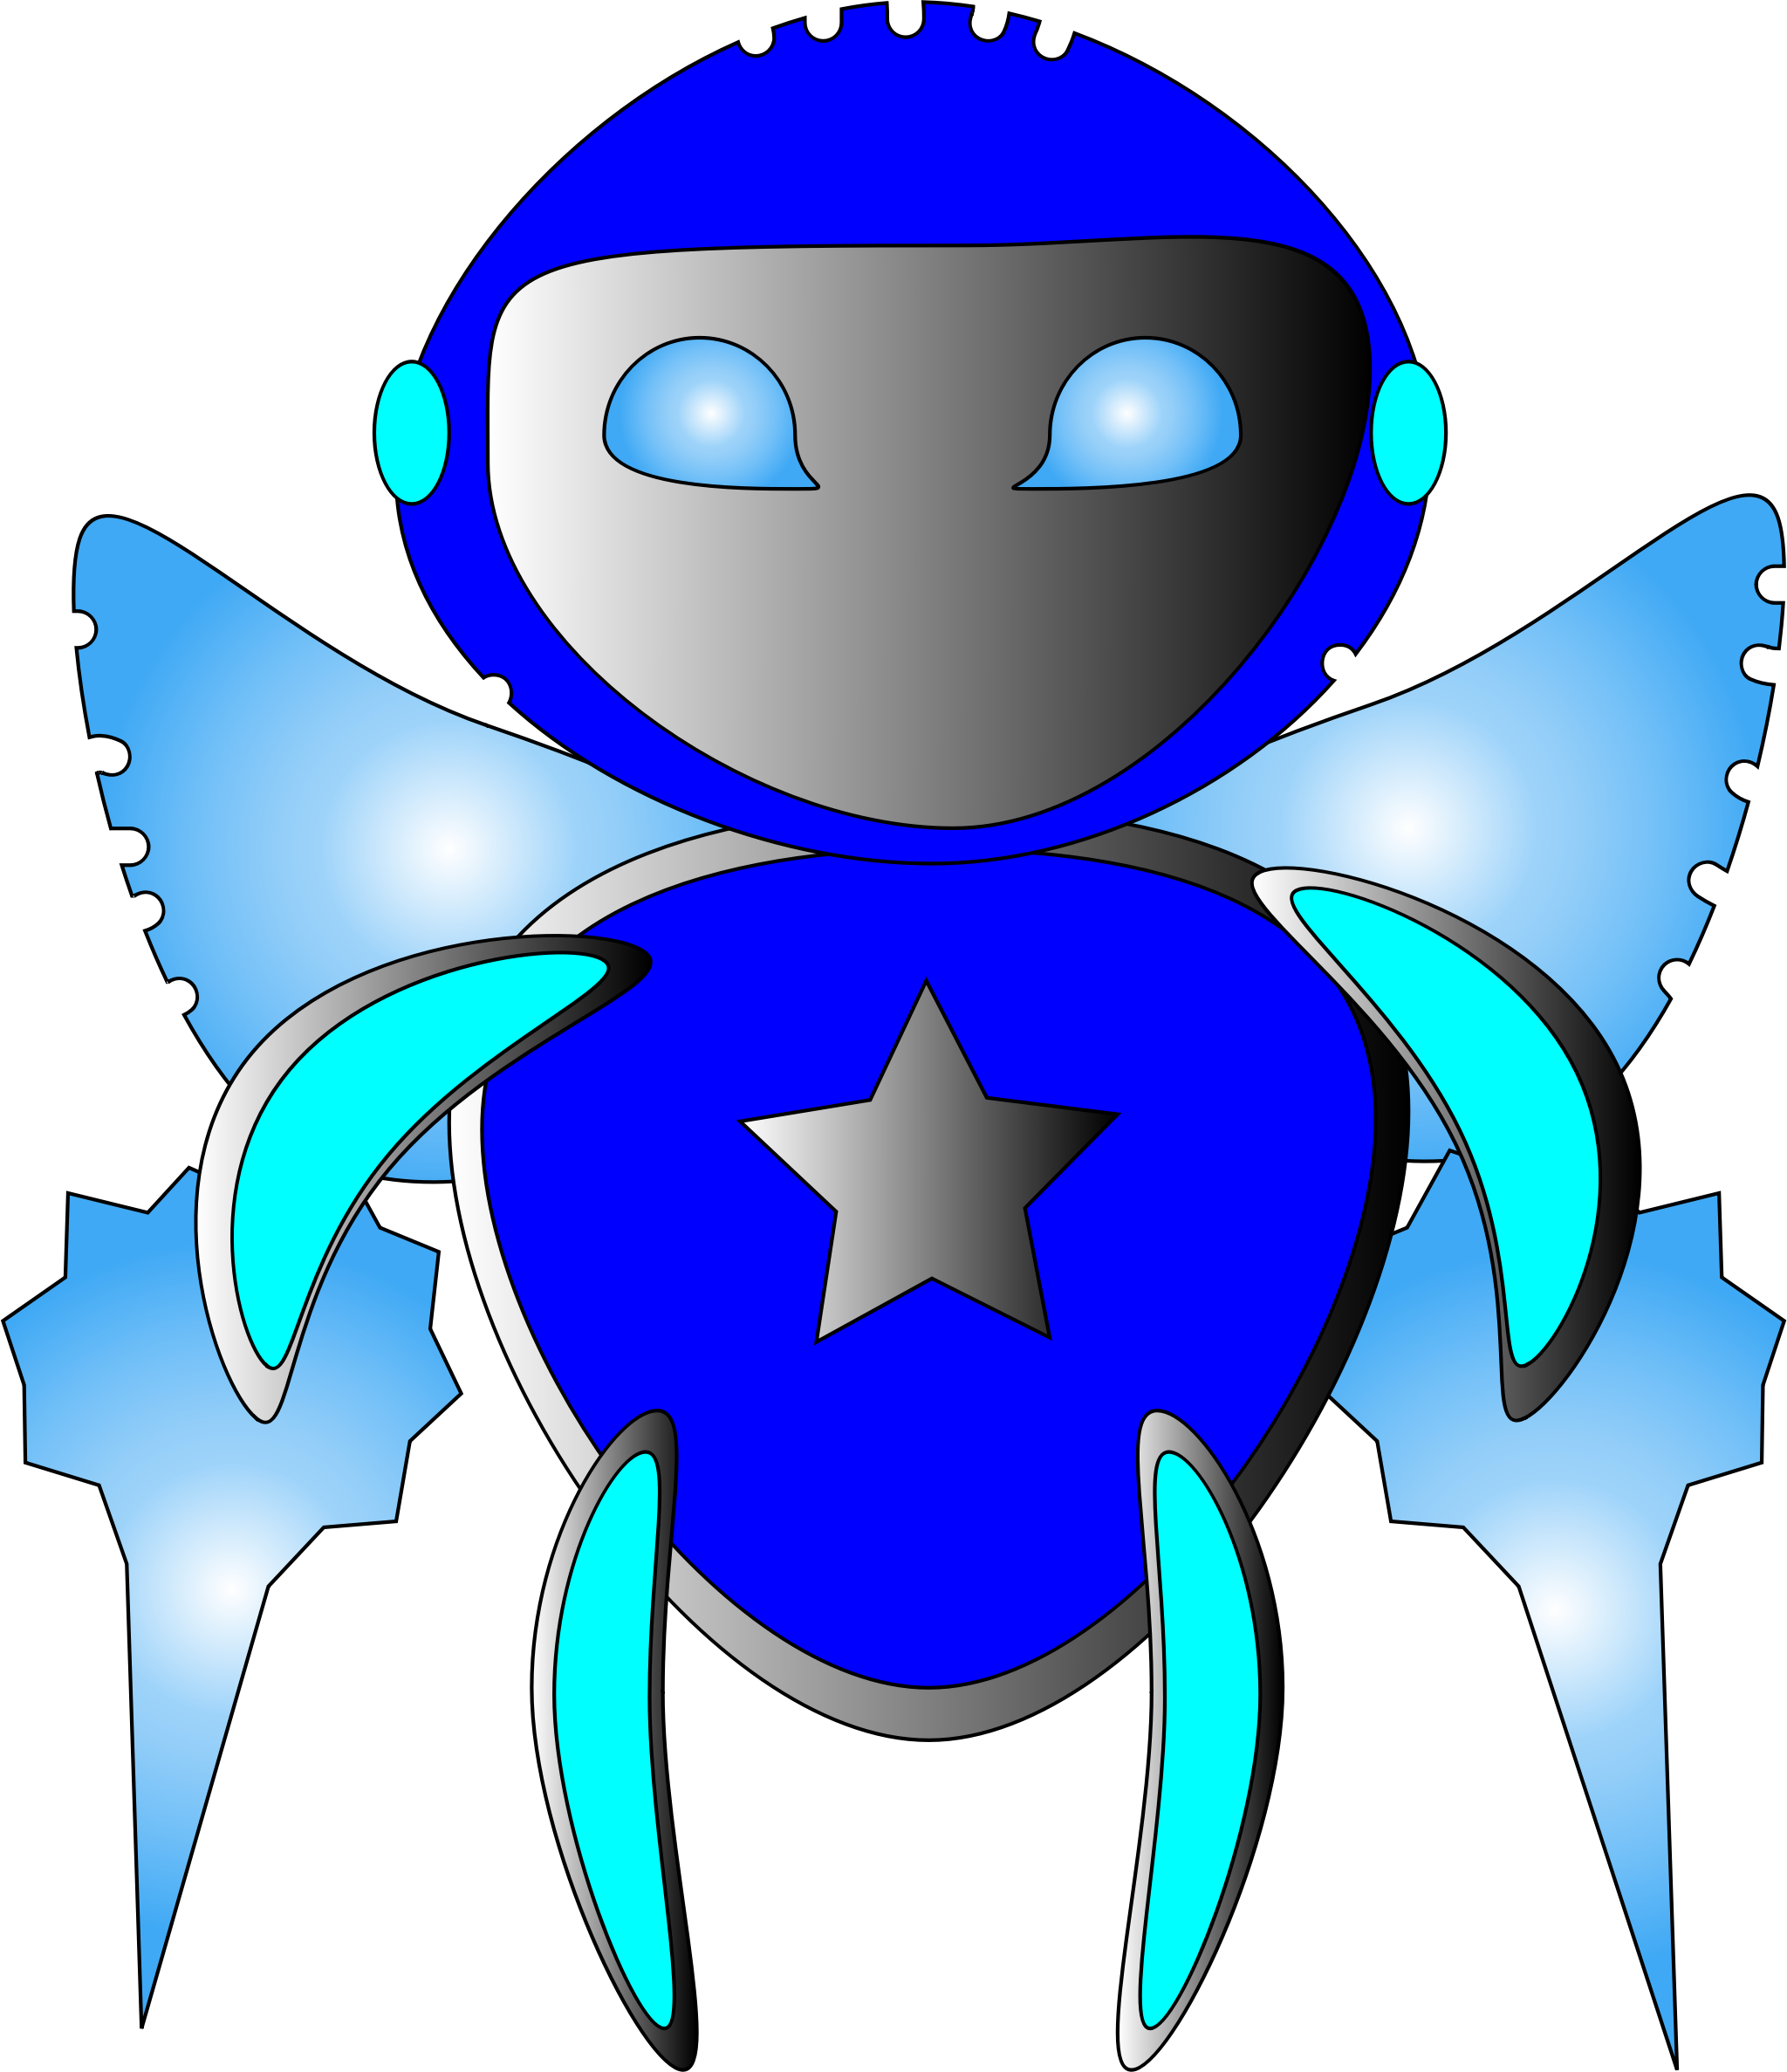 ROBOT CLIPART by tris10yeo